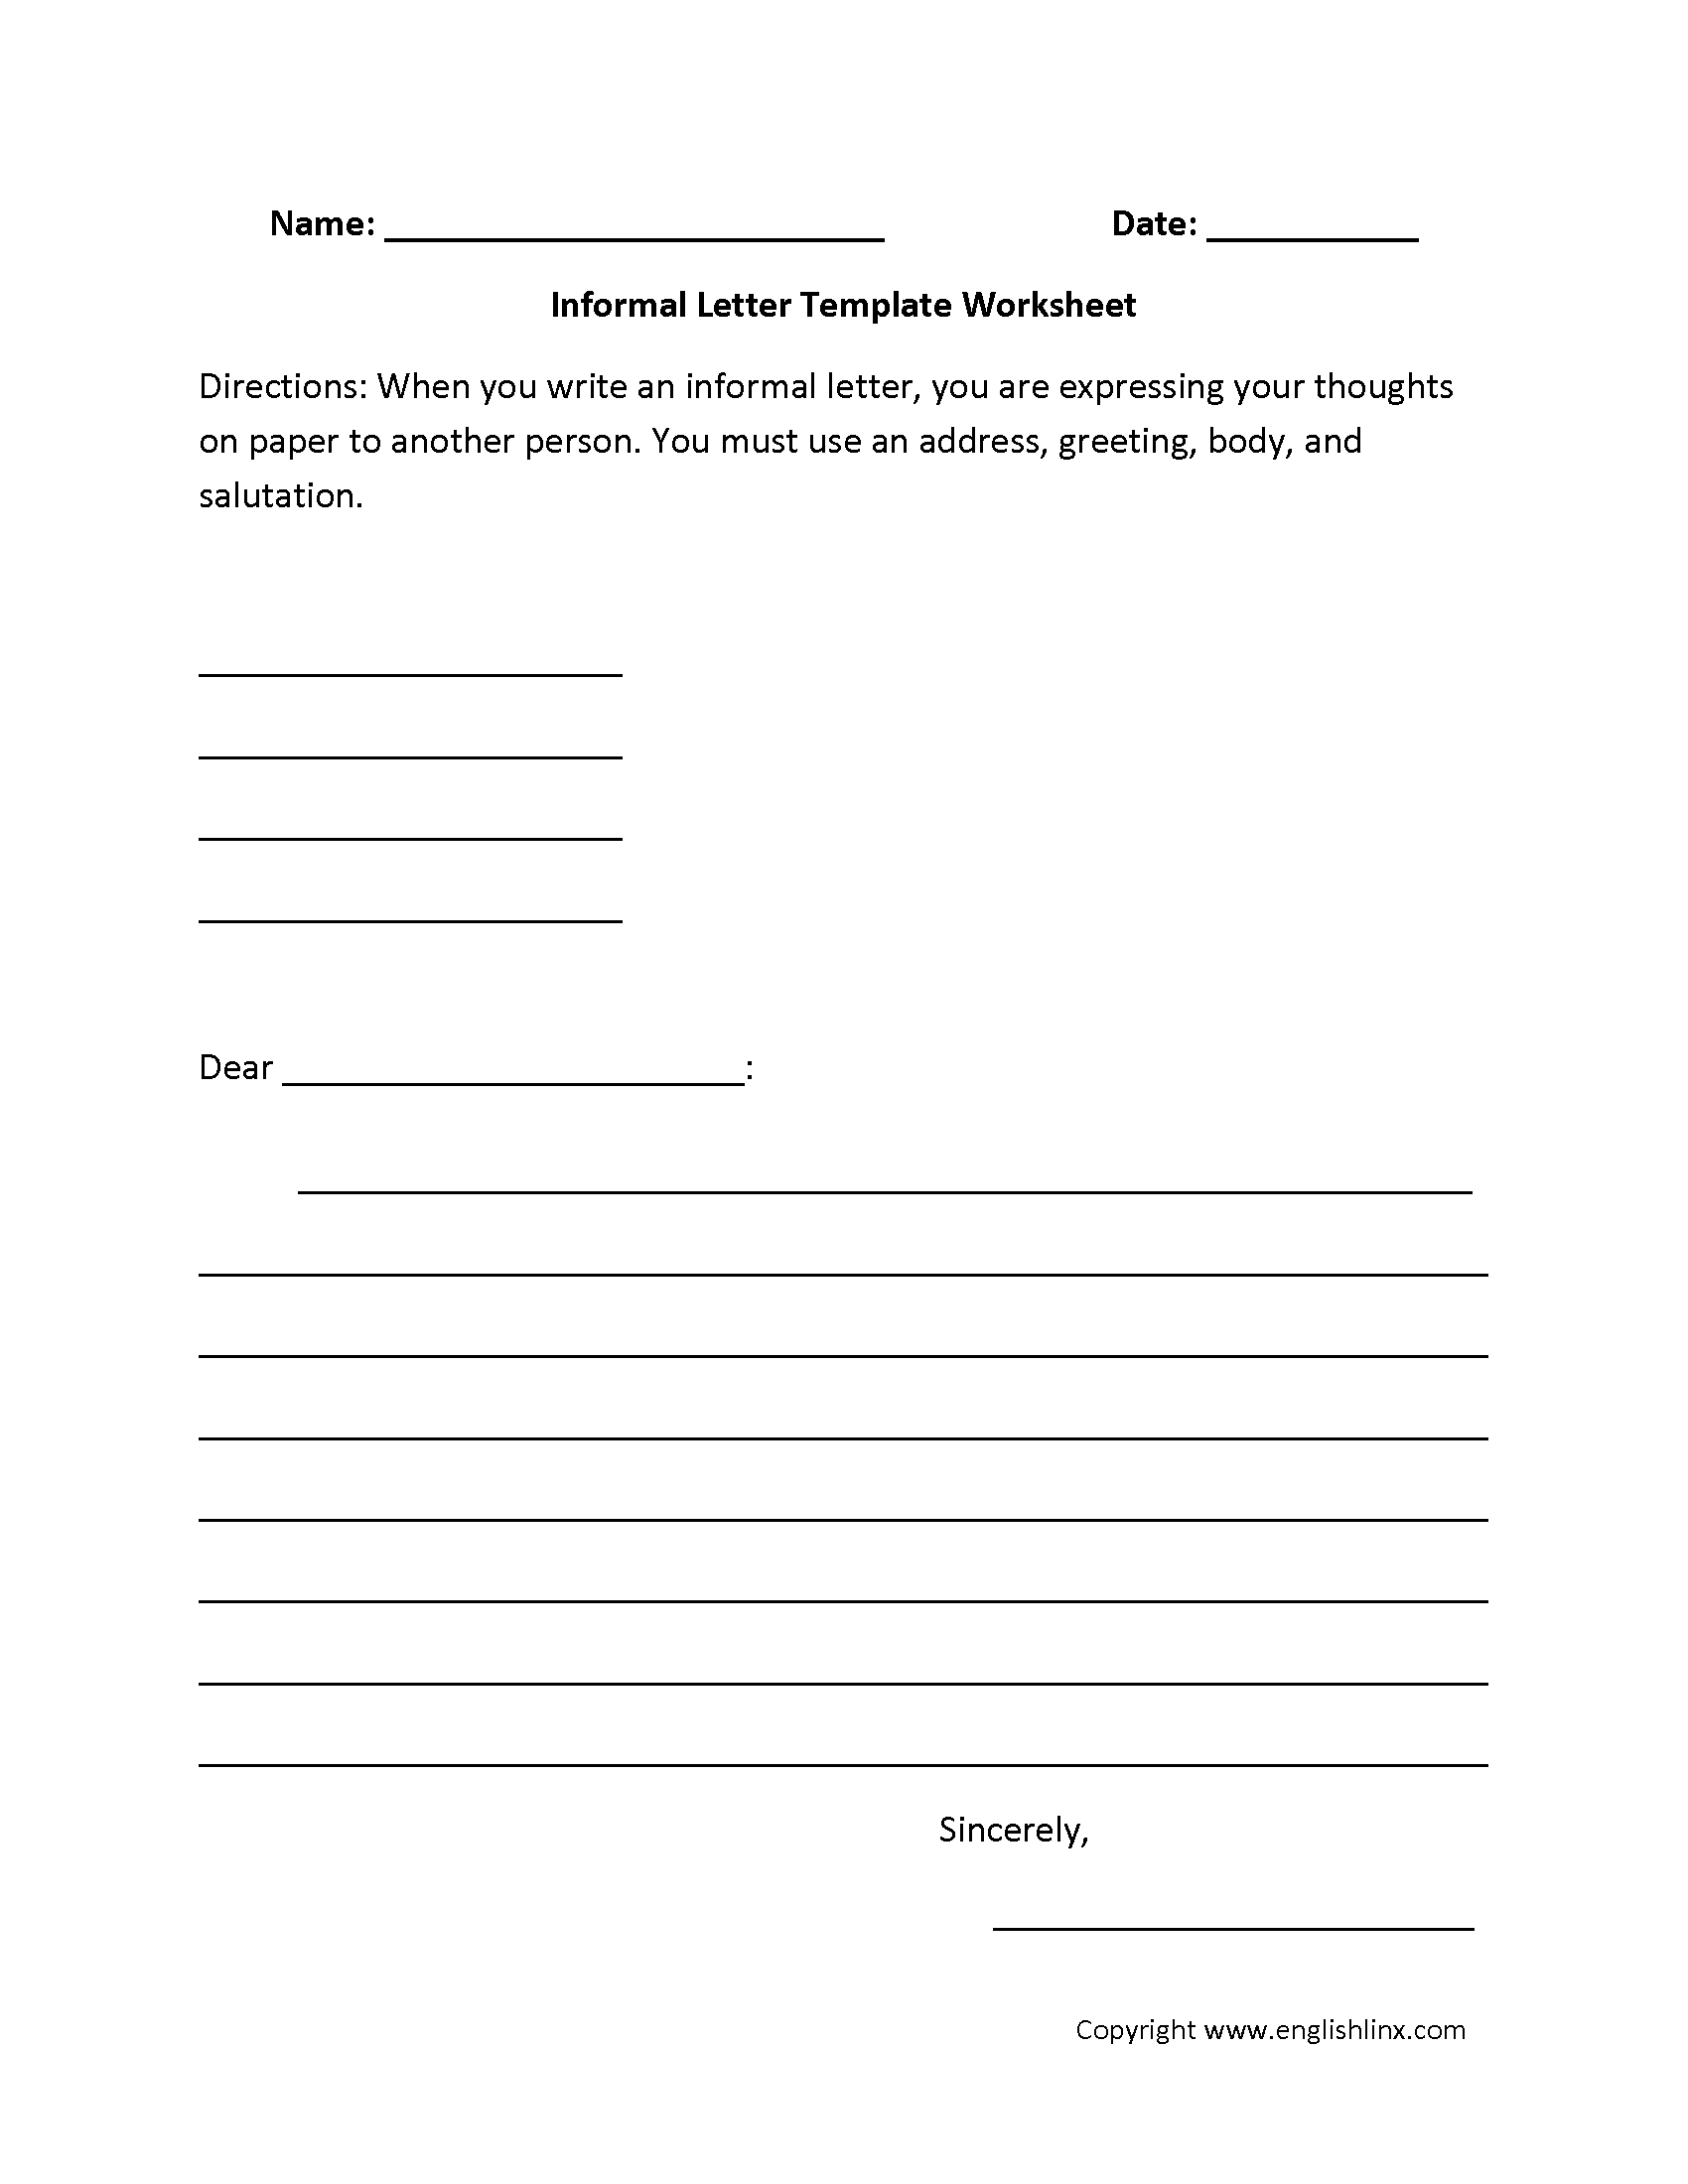 Letter Writing Worksheets | Informal Letter Writing Worksheets for Letter Writing Worksheets Pdf